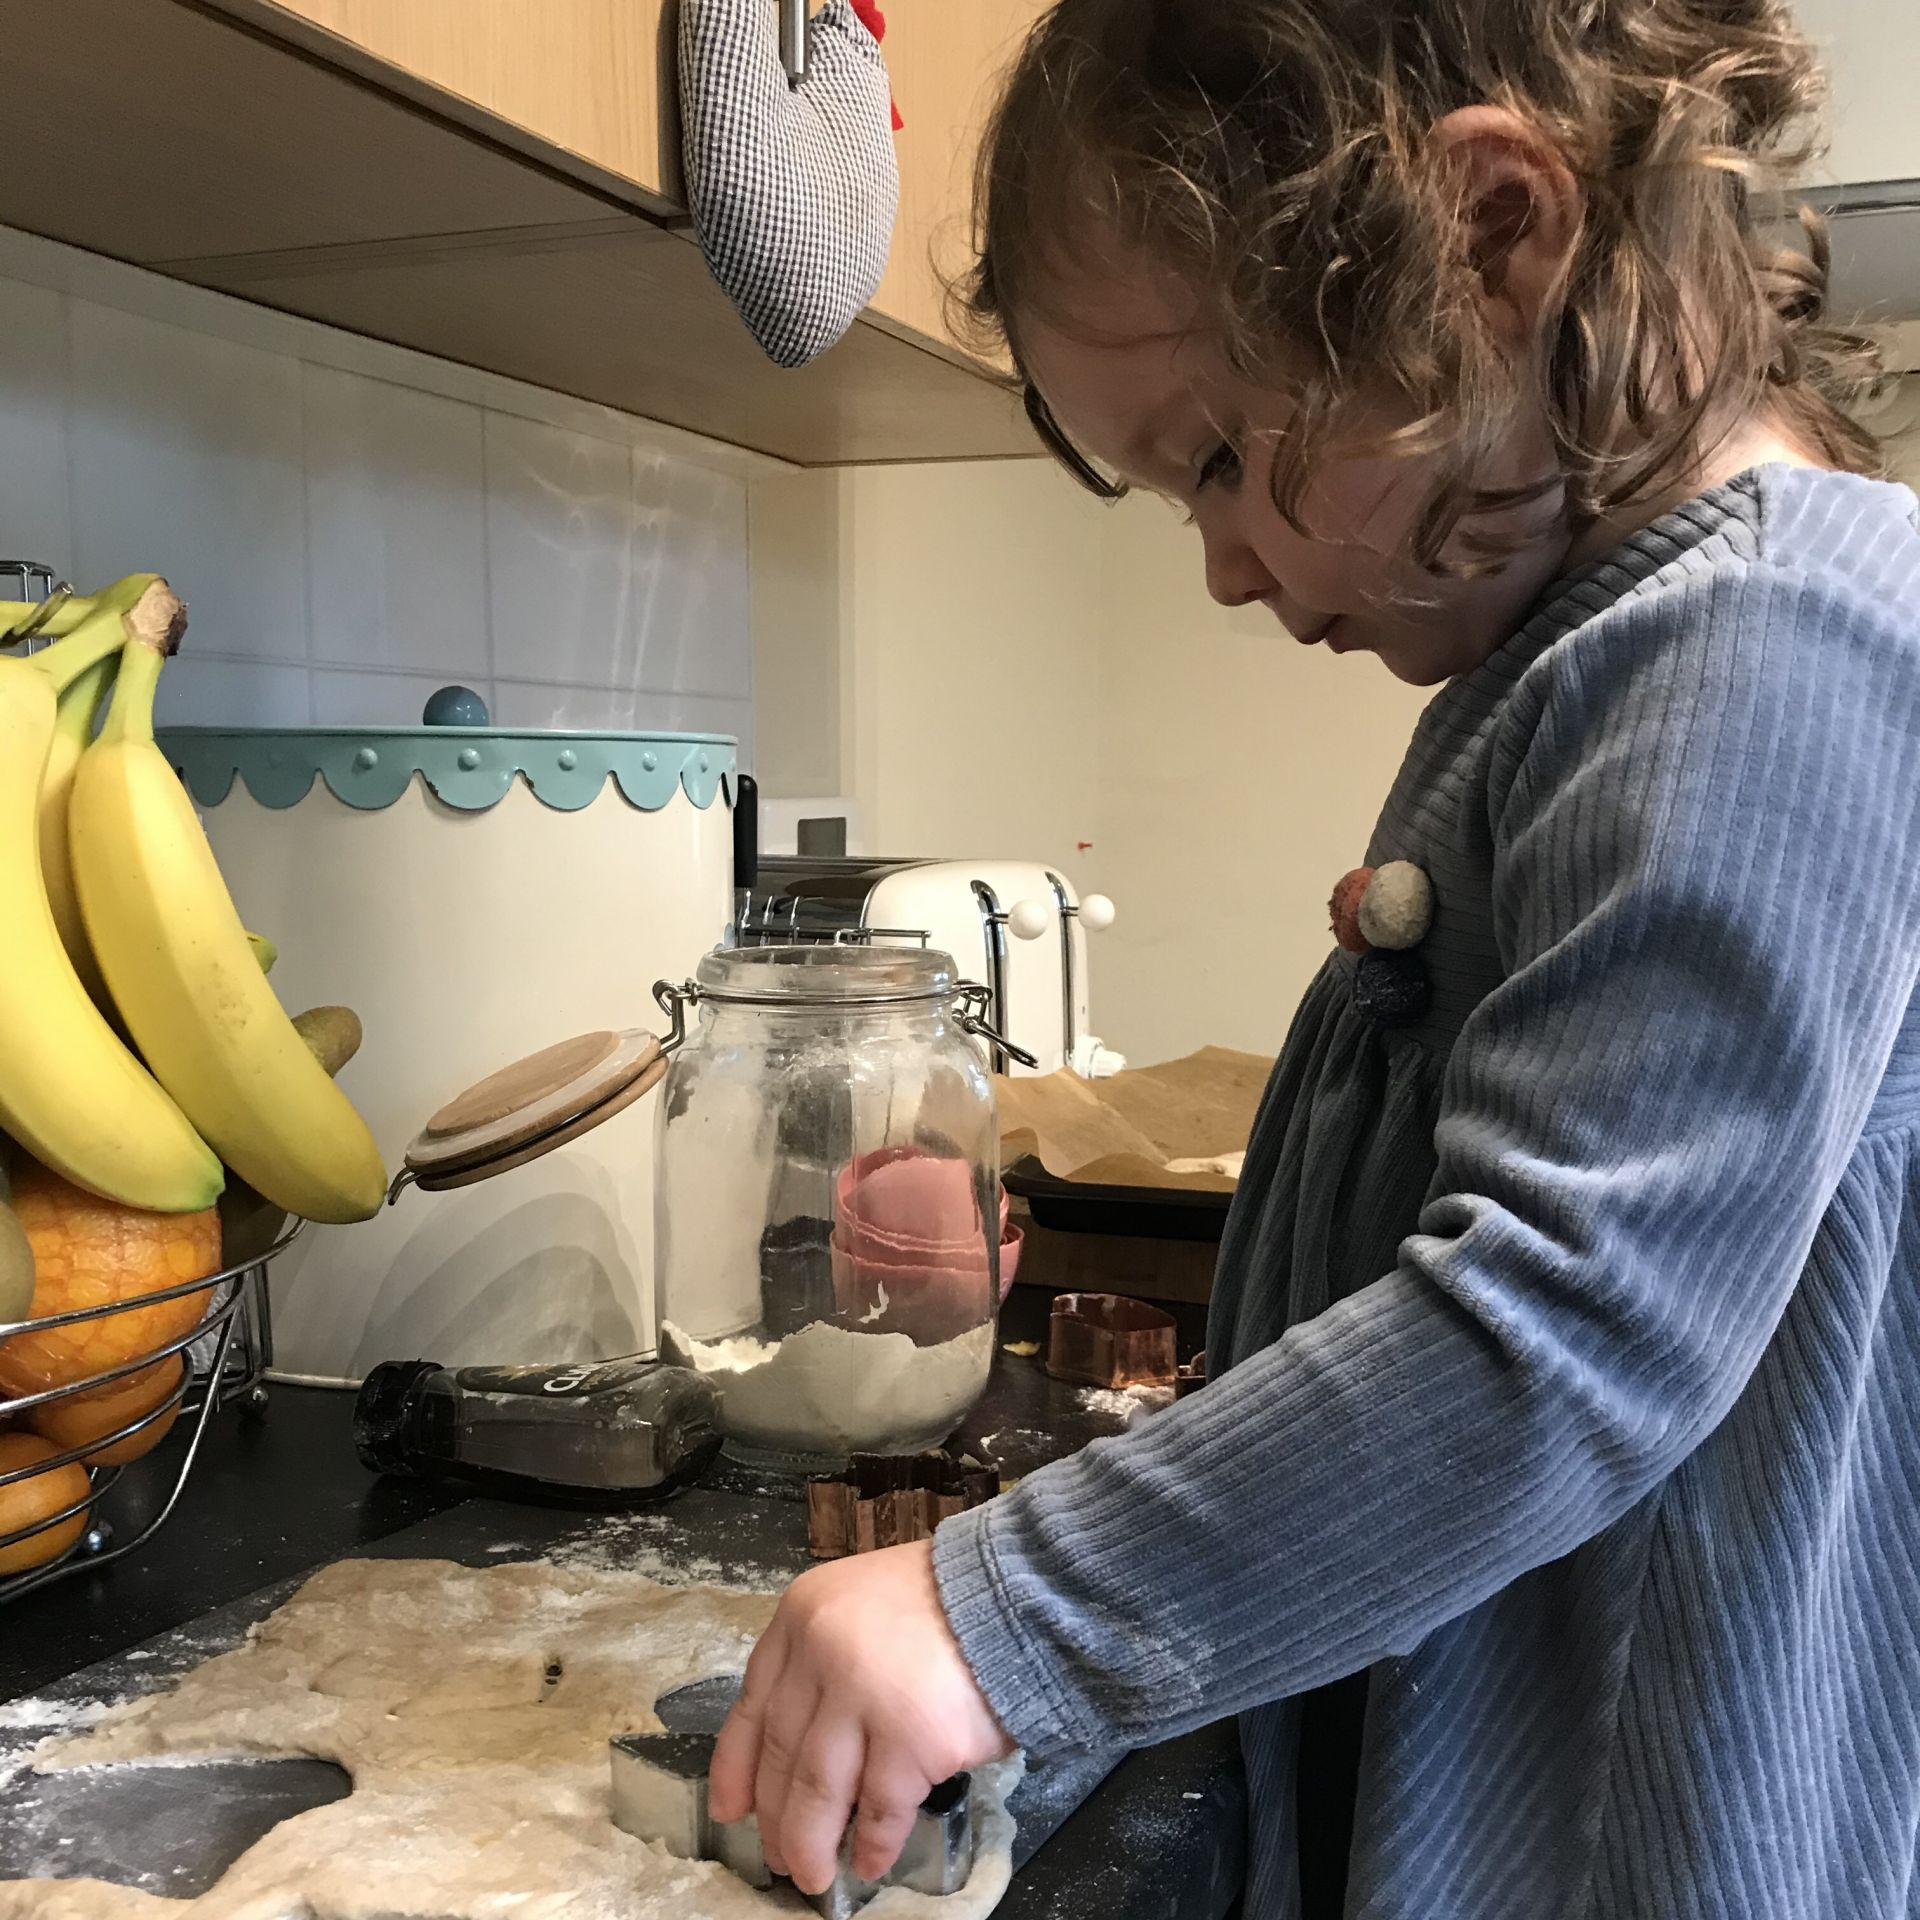 a small girl baking in the kitchen